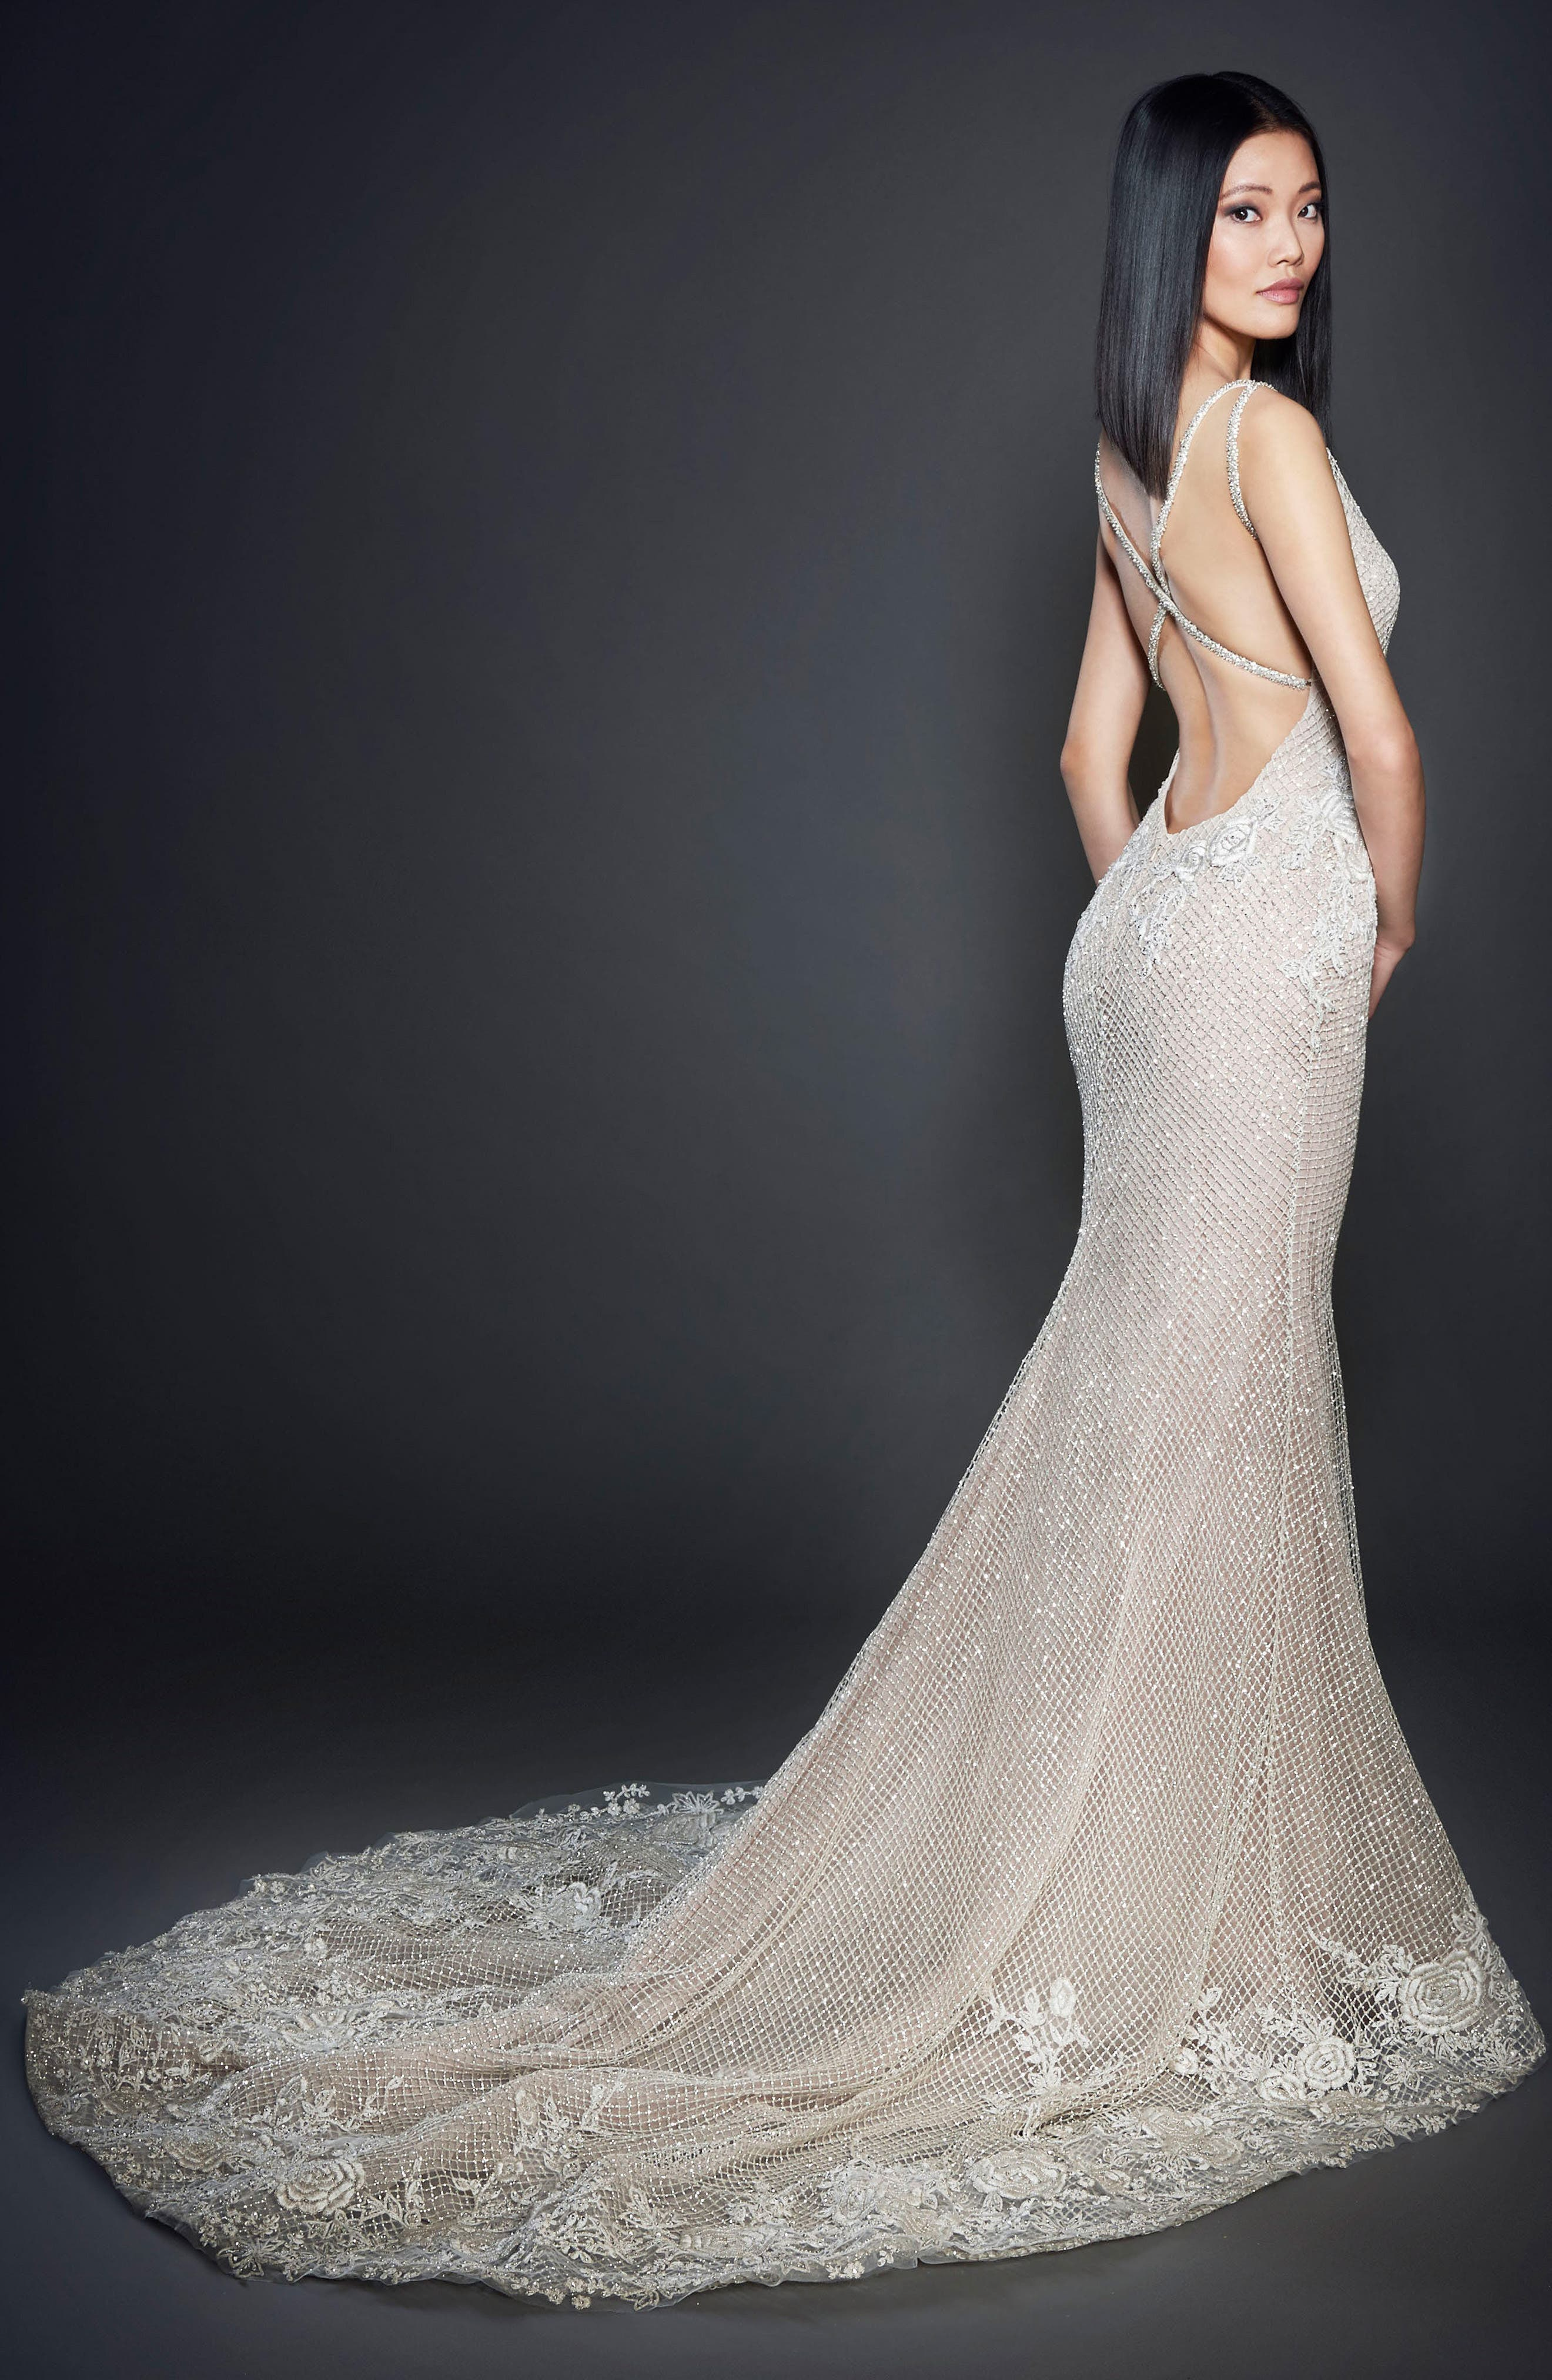 Embellished Check Net Gown,                             Alternate thumbnail 2, color,                             CHAMPAGNE